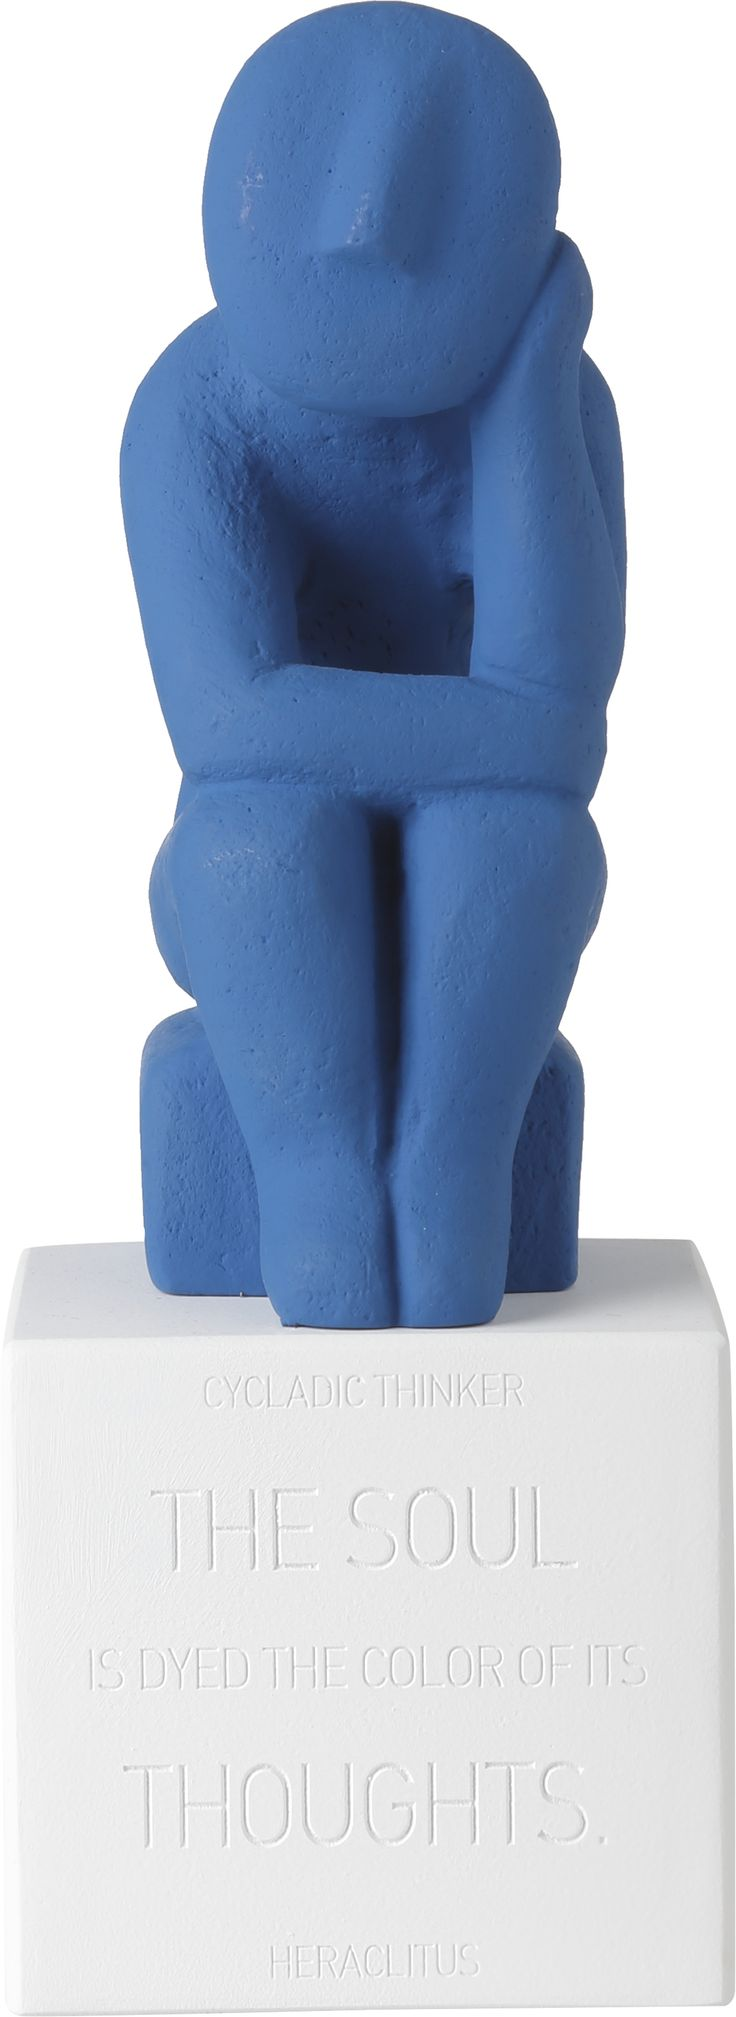 Cycladic Thinker Extra Large. Material: Ceramine Color: Royal blue